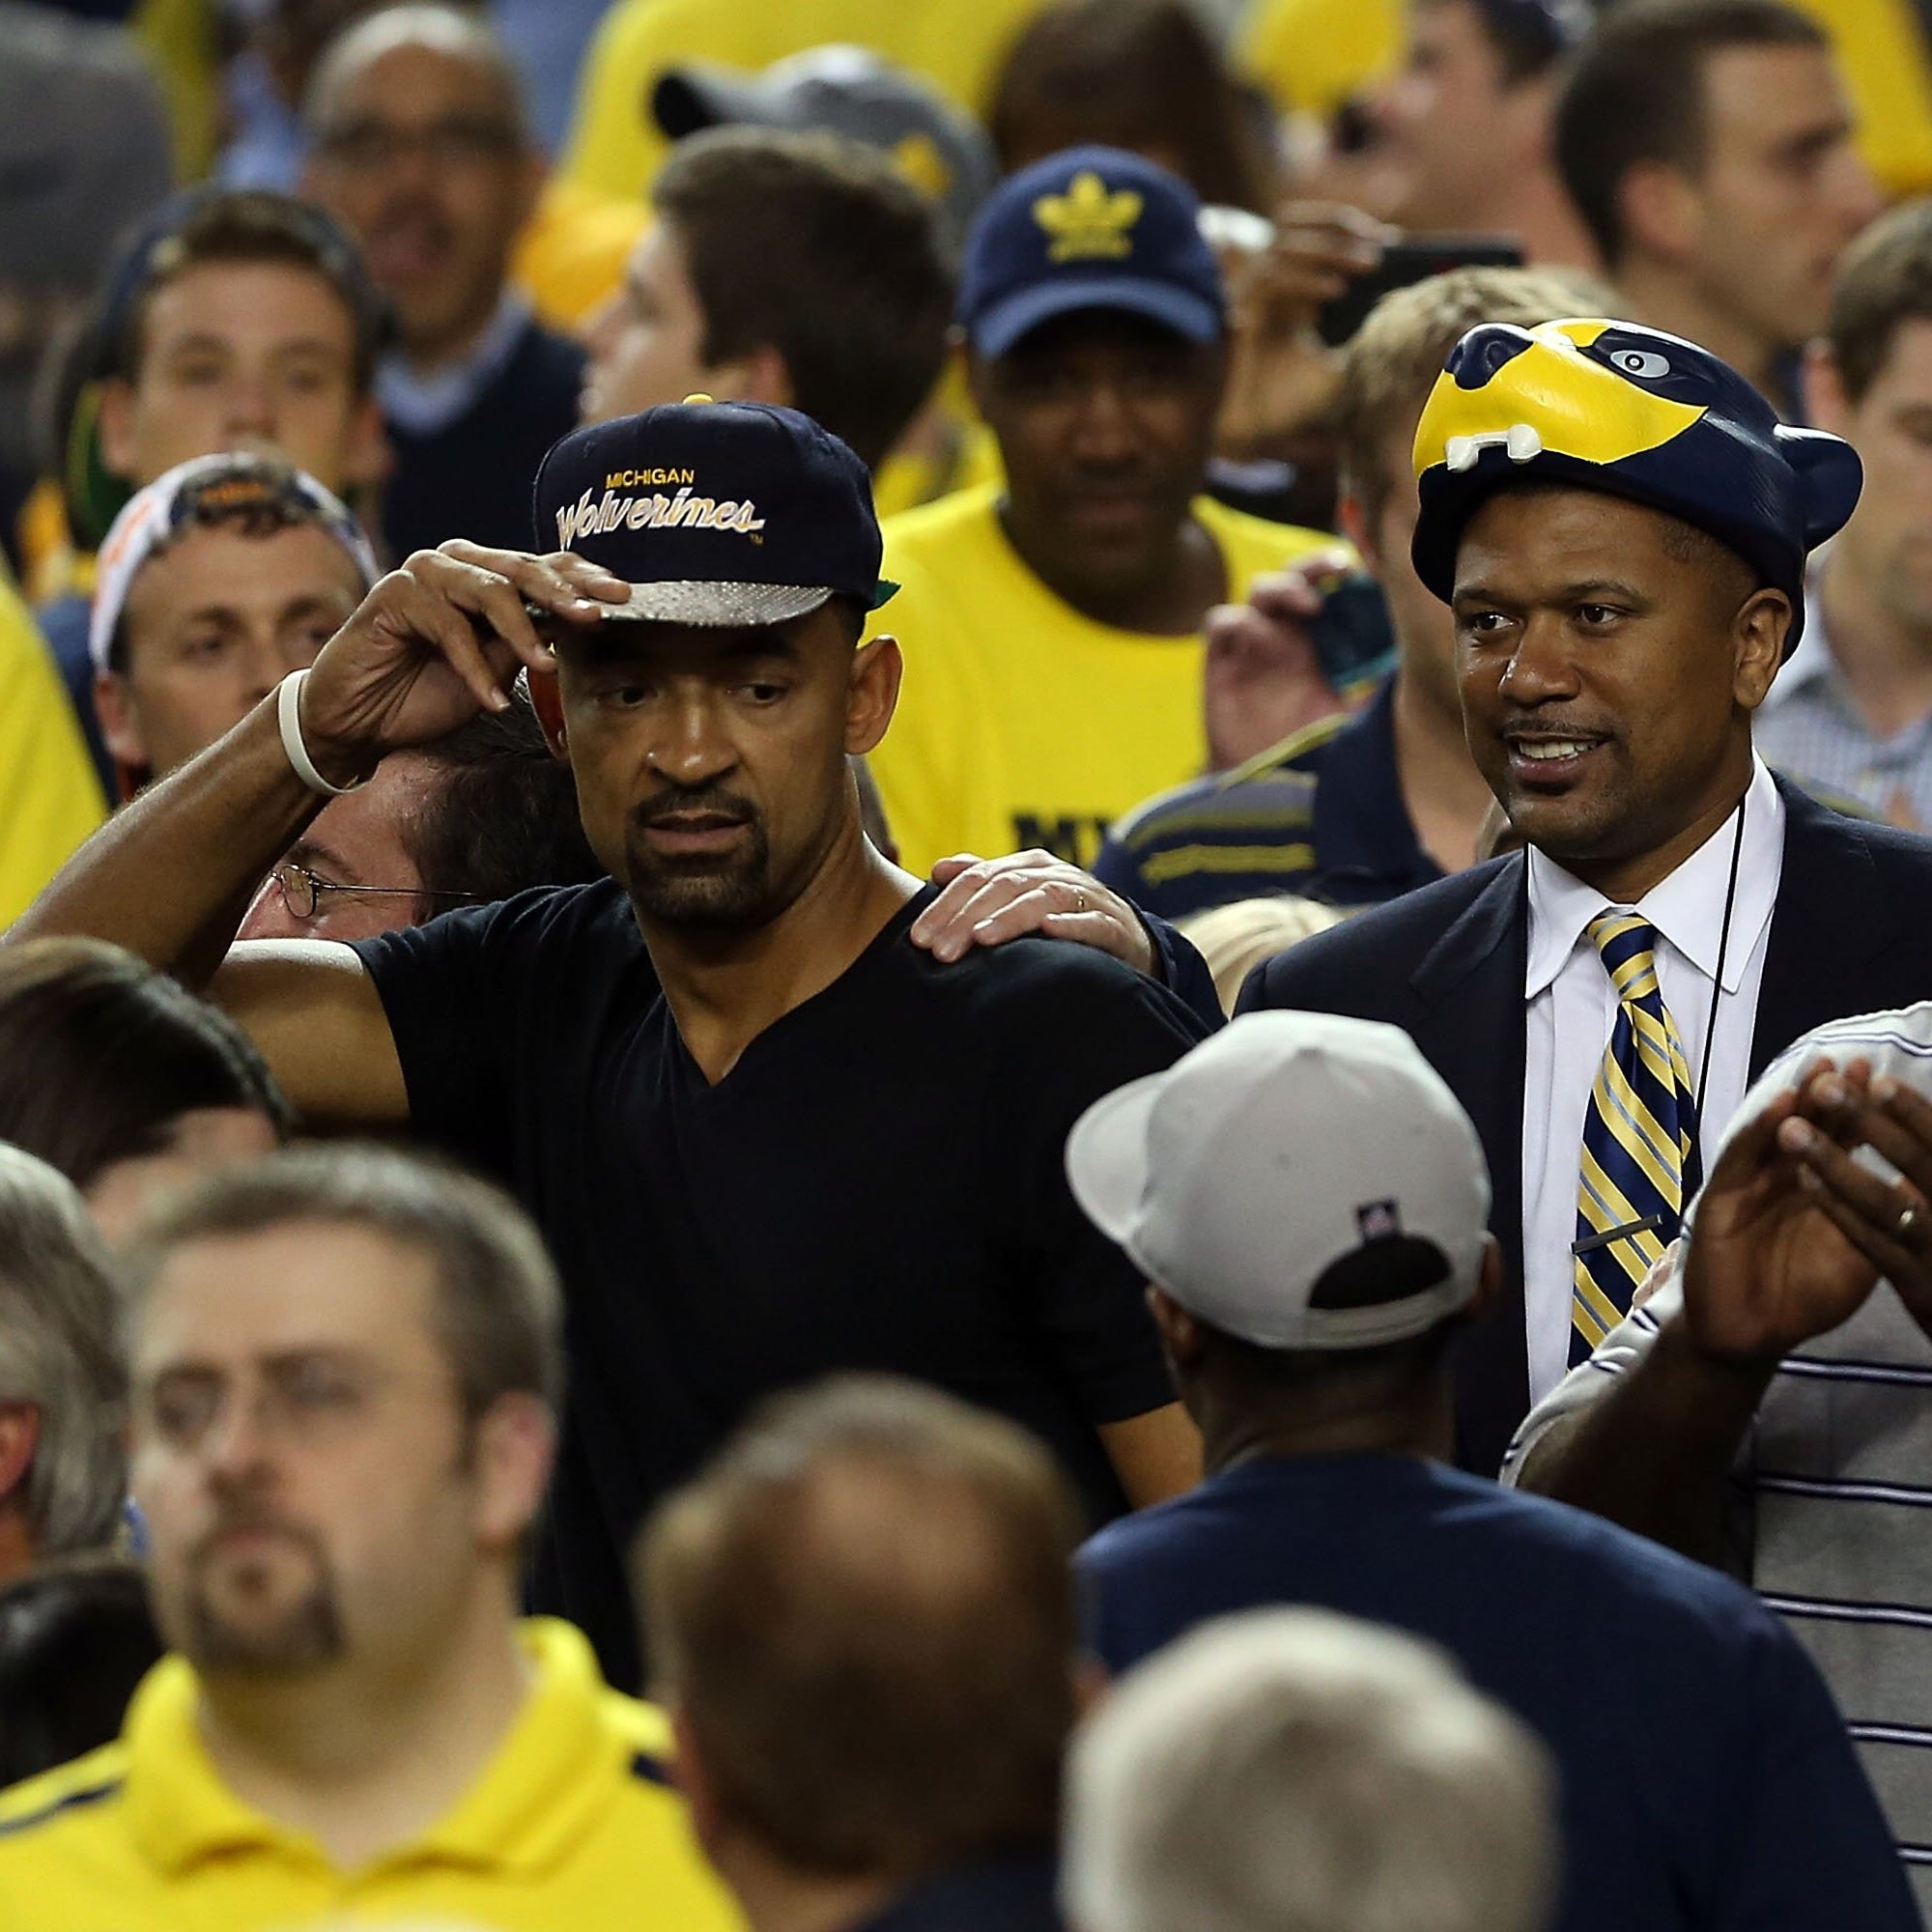 In Michigan basketball's coach search, winning shouldn't be top priority